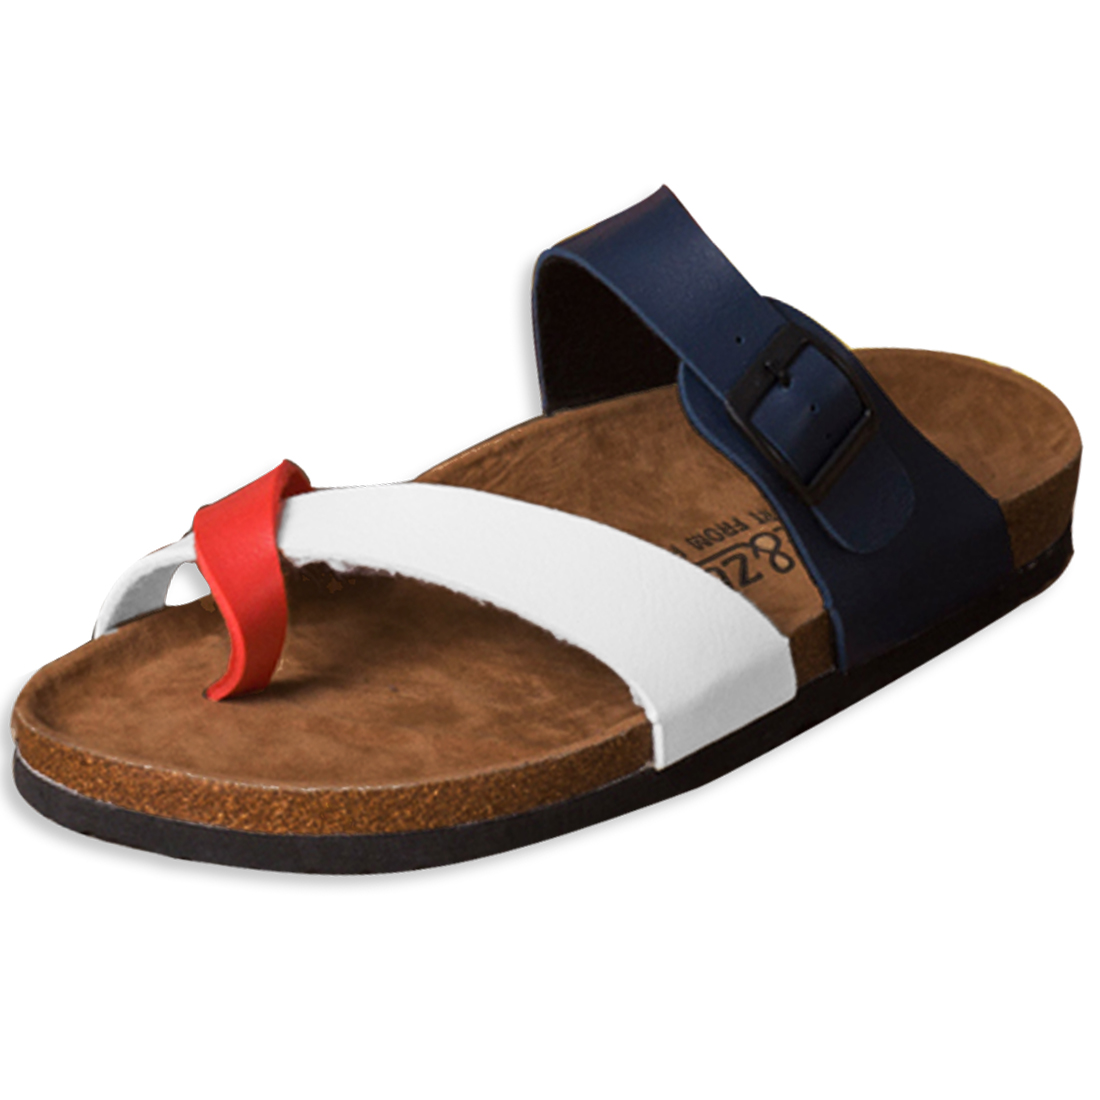 Unisex Summer Beach Faux Leather Sandals Dark Blue Red US 9